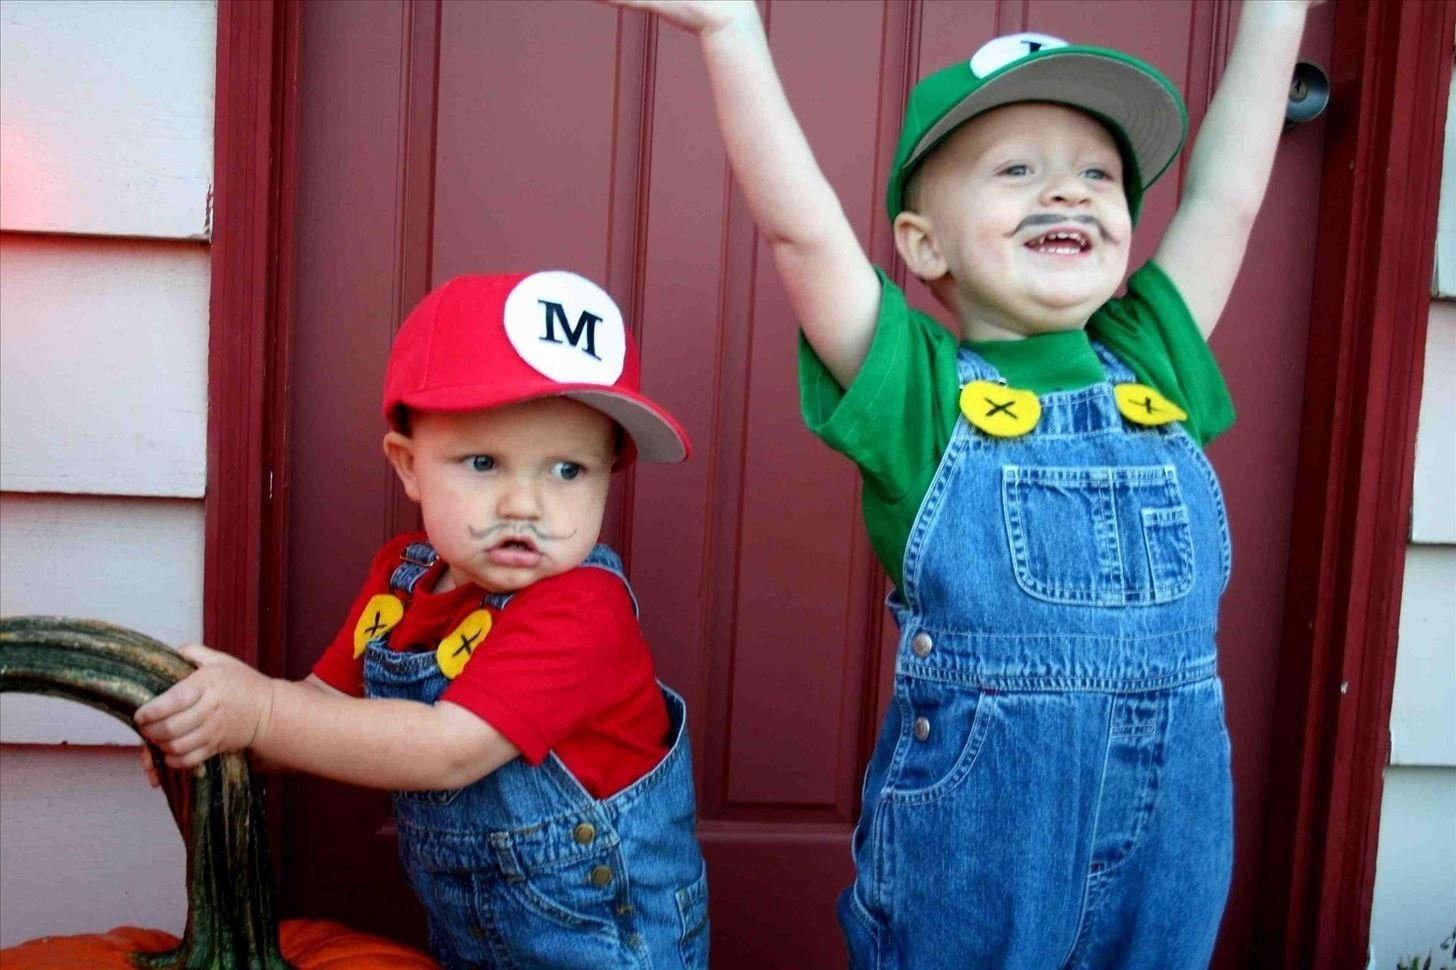 10 Nice Cool Homemade Halloween Costume Ideas 10 cheap easy awesome diy halloween costumes for kids homemade 2020